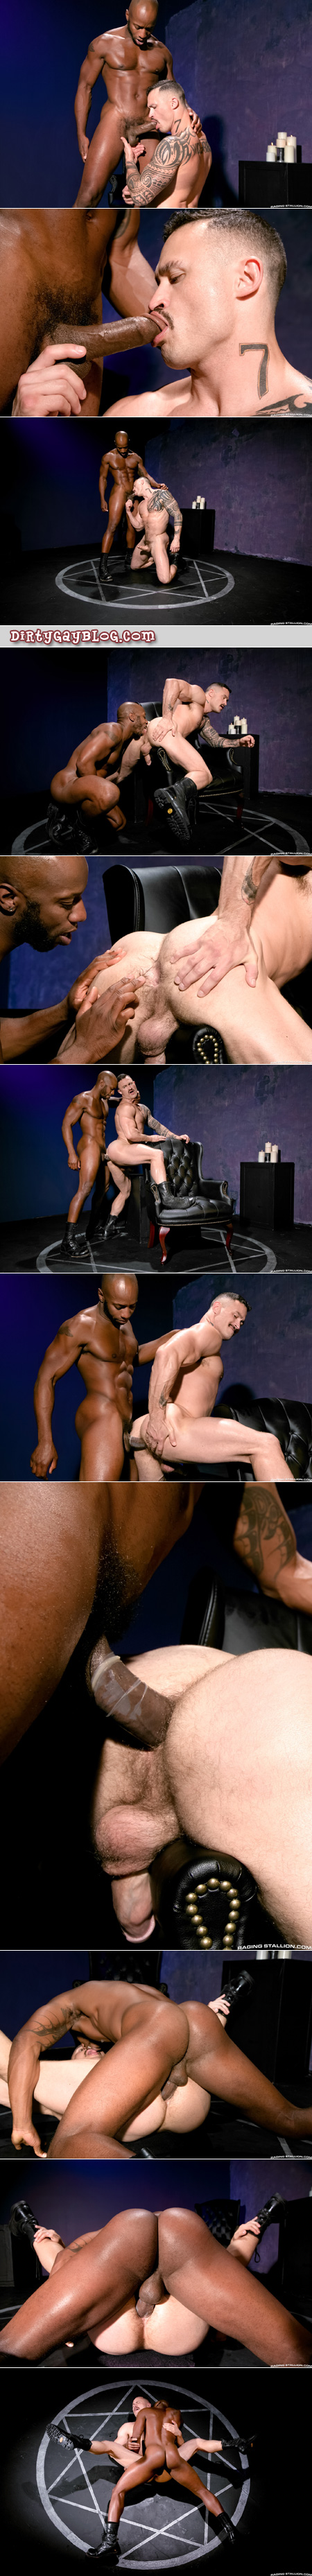 Black on white interracial gay muscle sex.